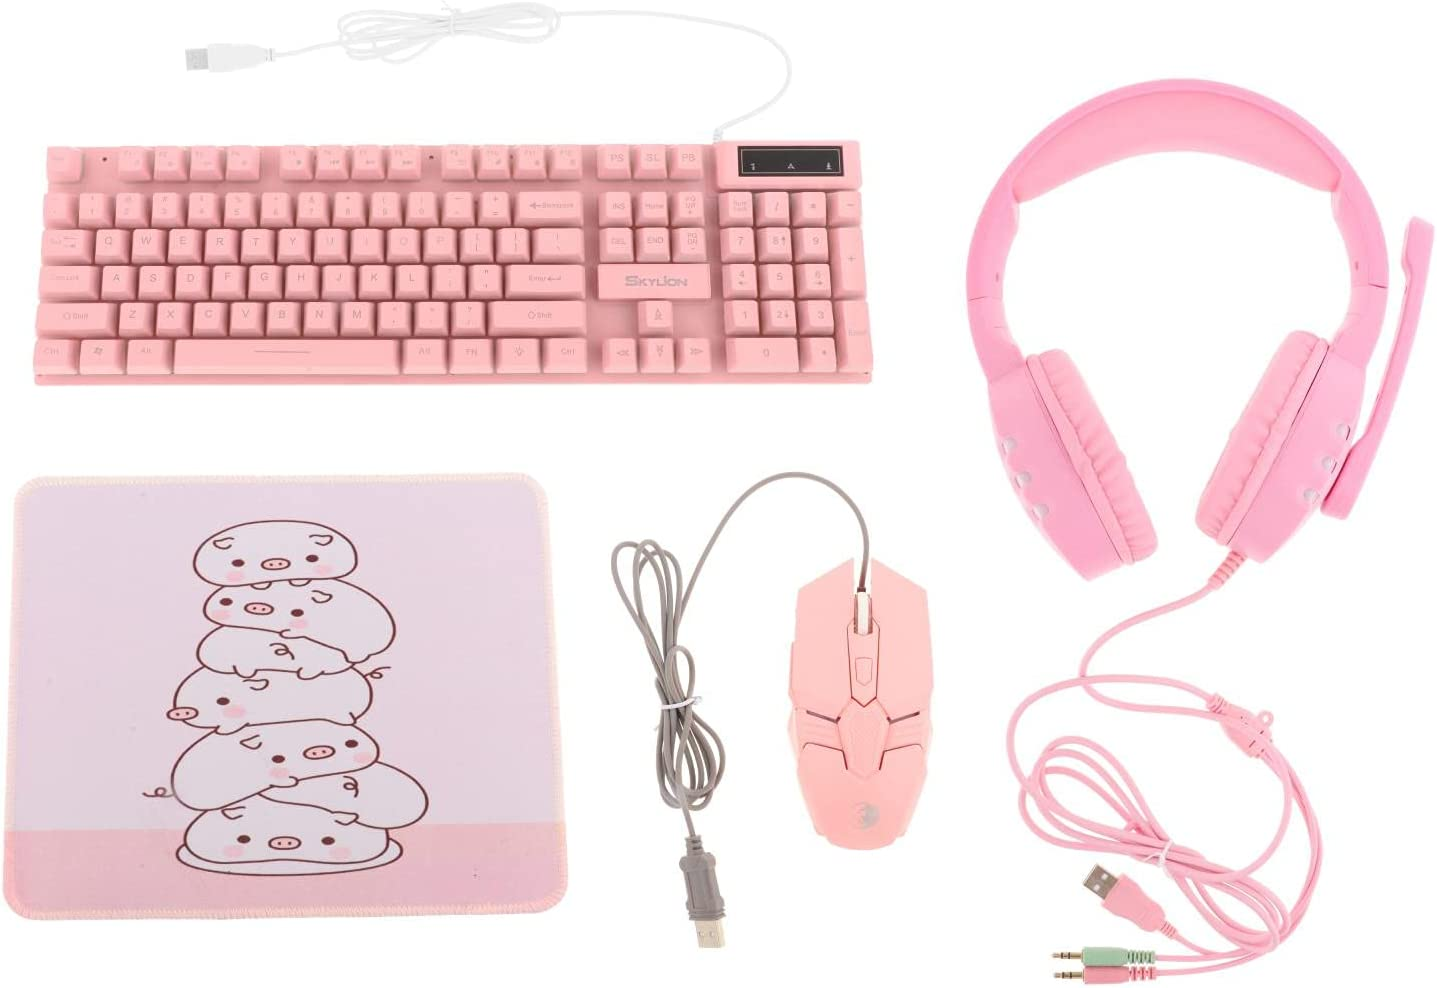 Kesoto Gaming Keyboard Mouse Headset & Mouse Pad Kit,Programmable Mouse, Wired USB Keyboards,Gaming Keyboard Combo, for Computer Desktop Gamer - Pink